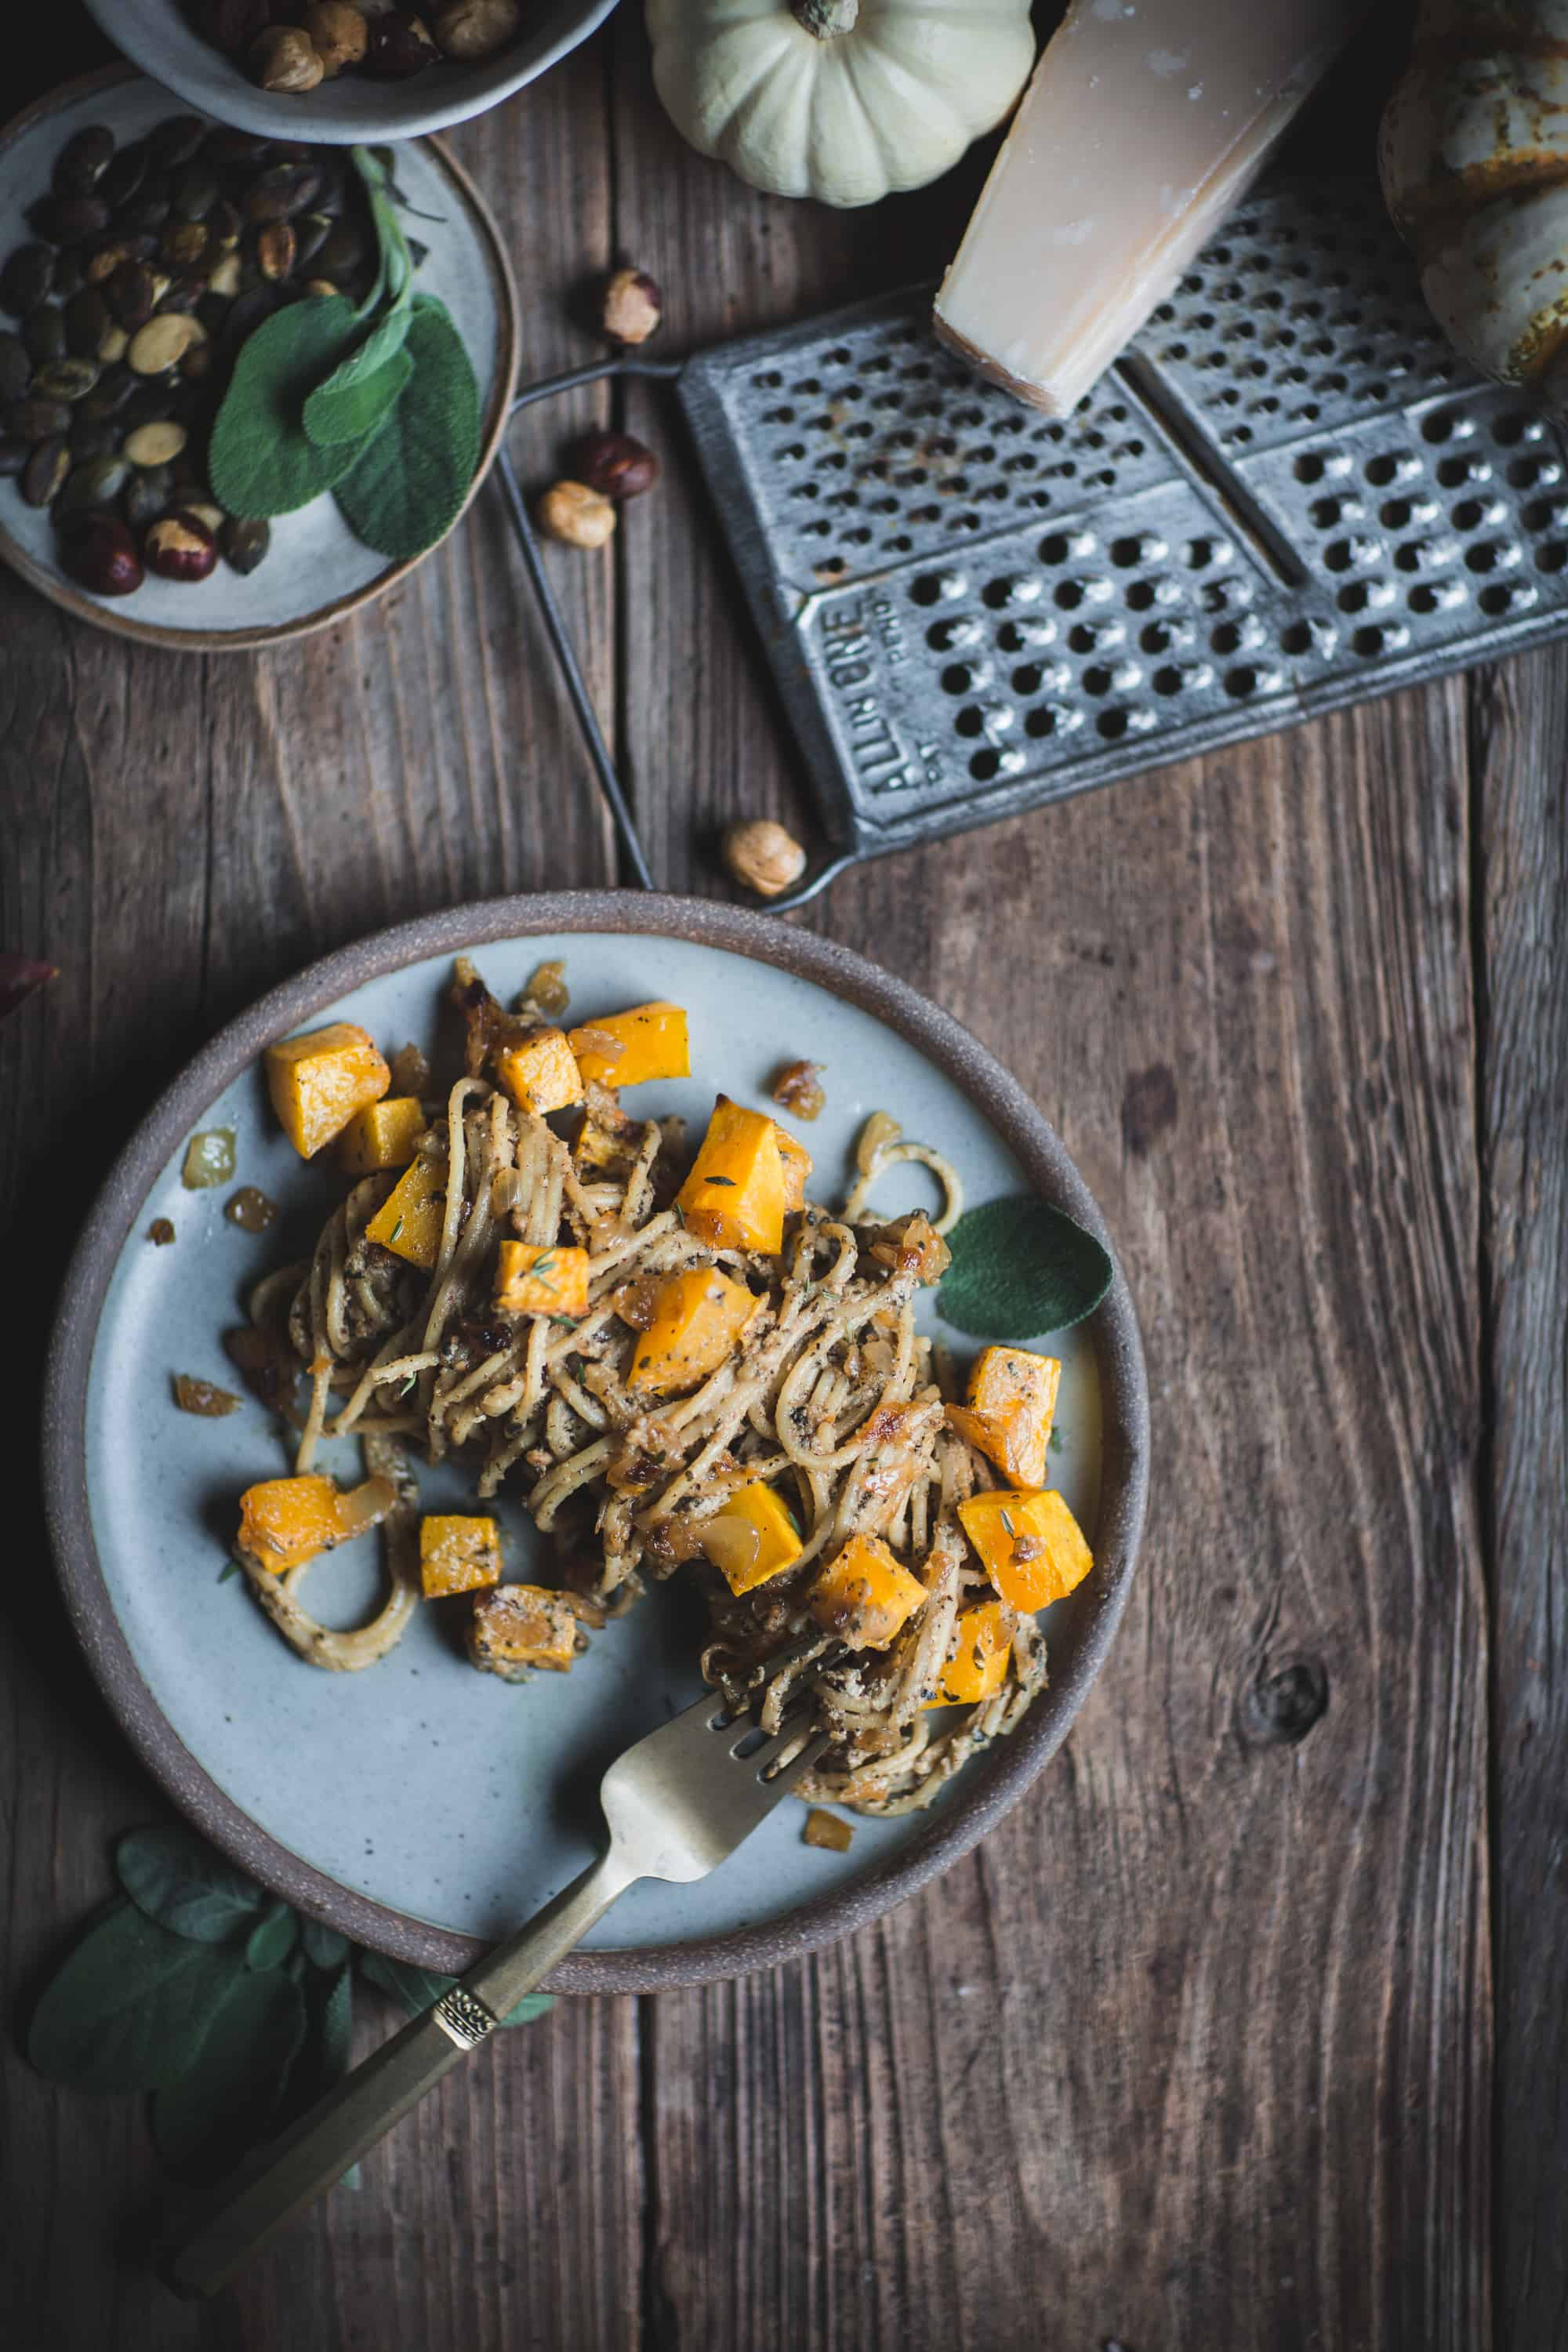 Hazelnut and Butternut Squash Spaghetti by Eva Kosmas Flores